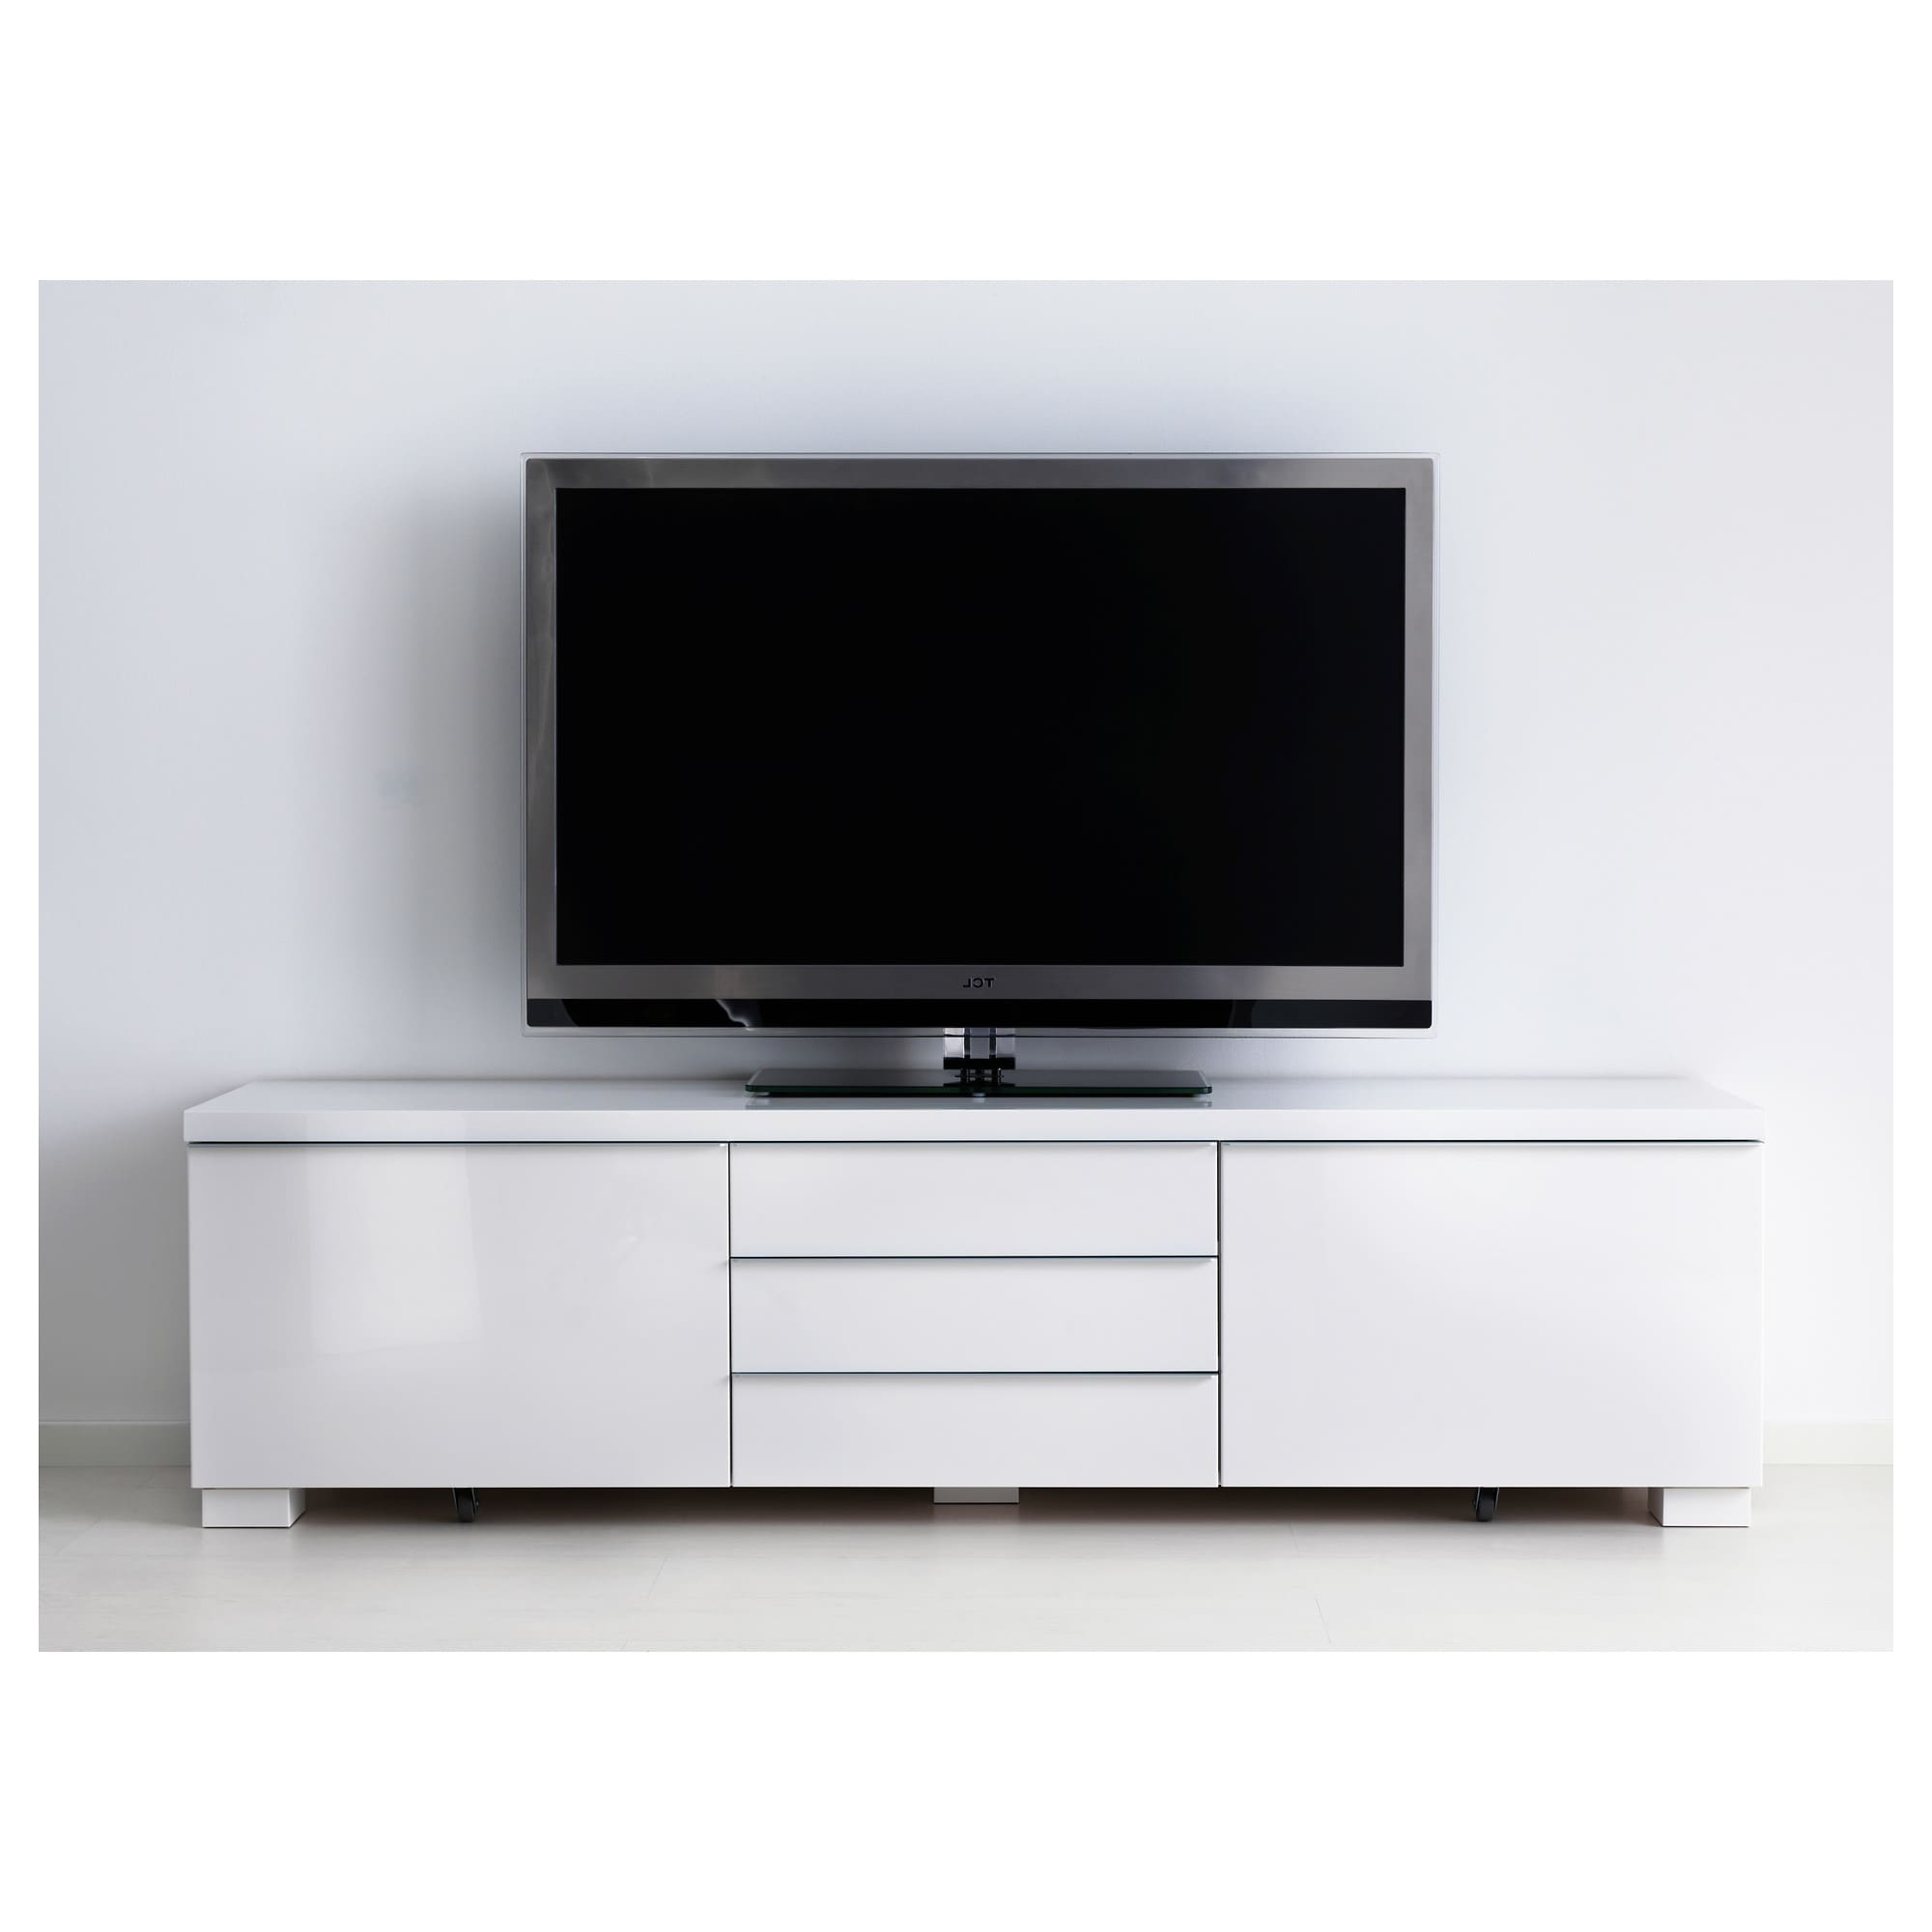 Tv Stands 40 Inches Wide For Most Popular Artistic We Furniture 52 Inch Wood Console Corner Tv Stand White On (View 15 of 20)